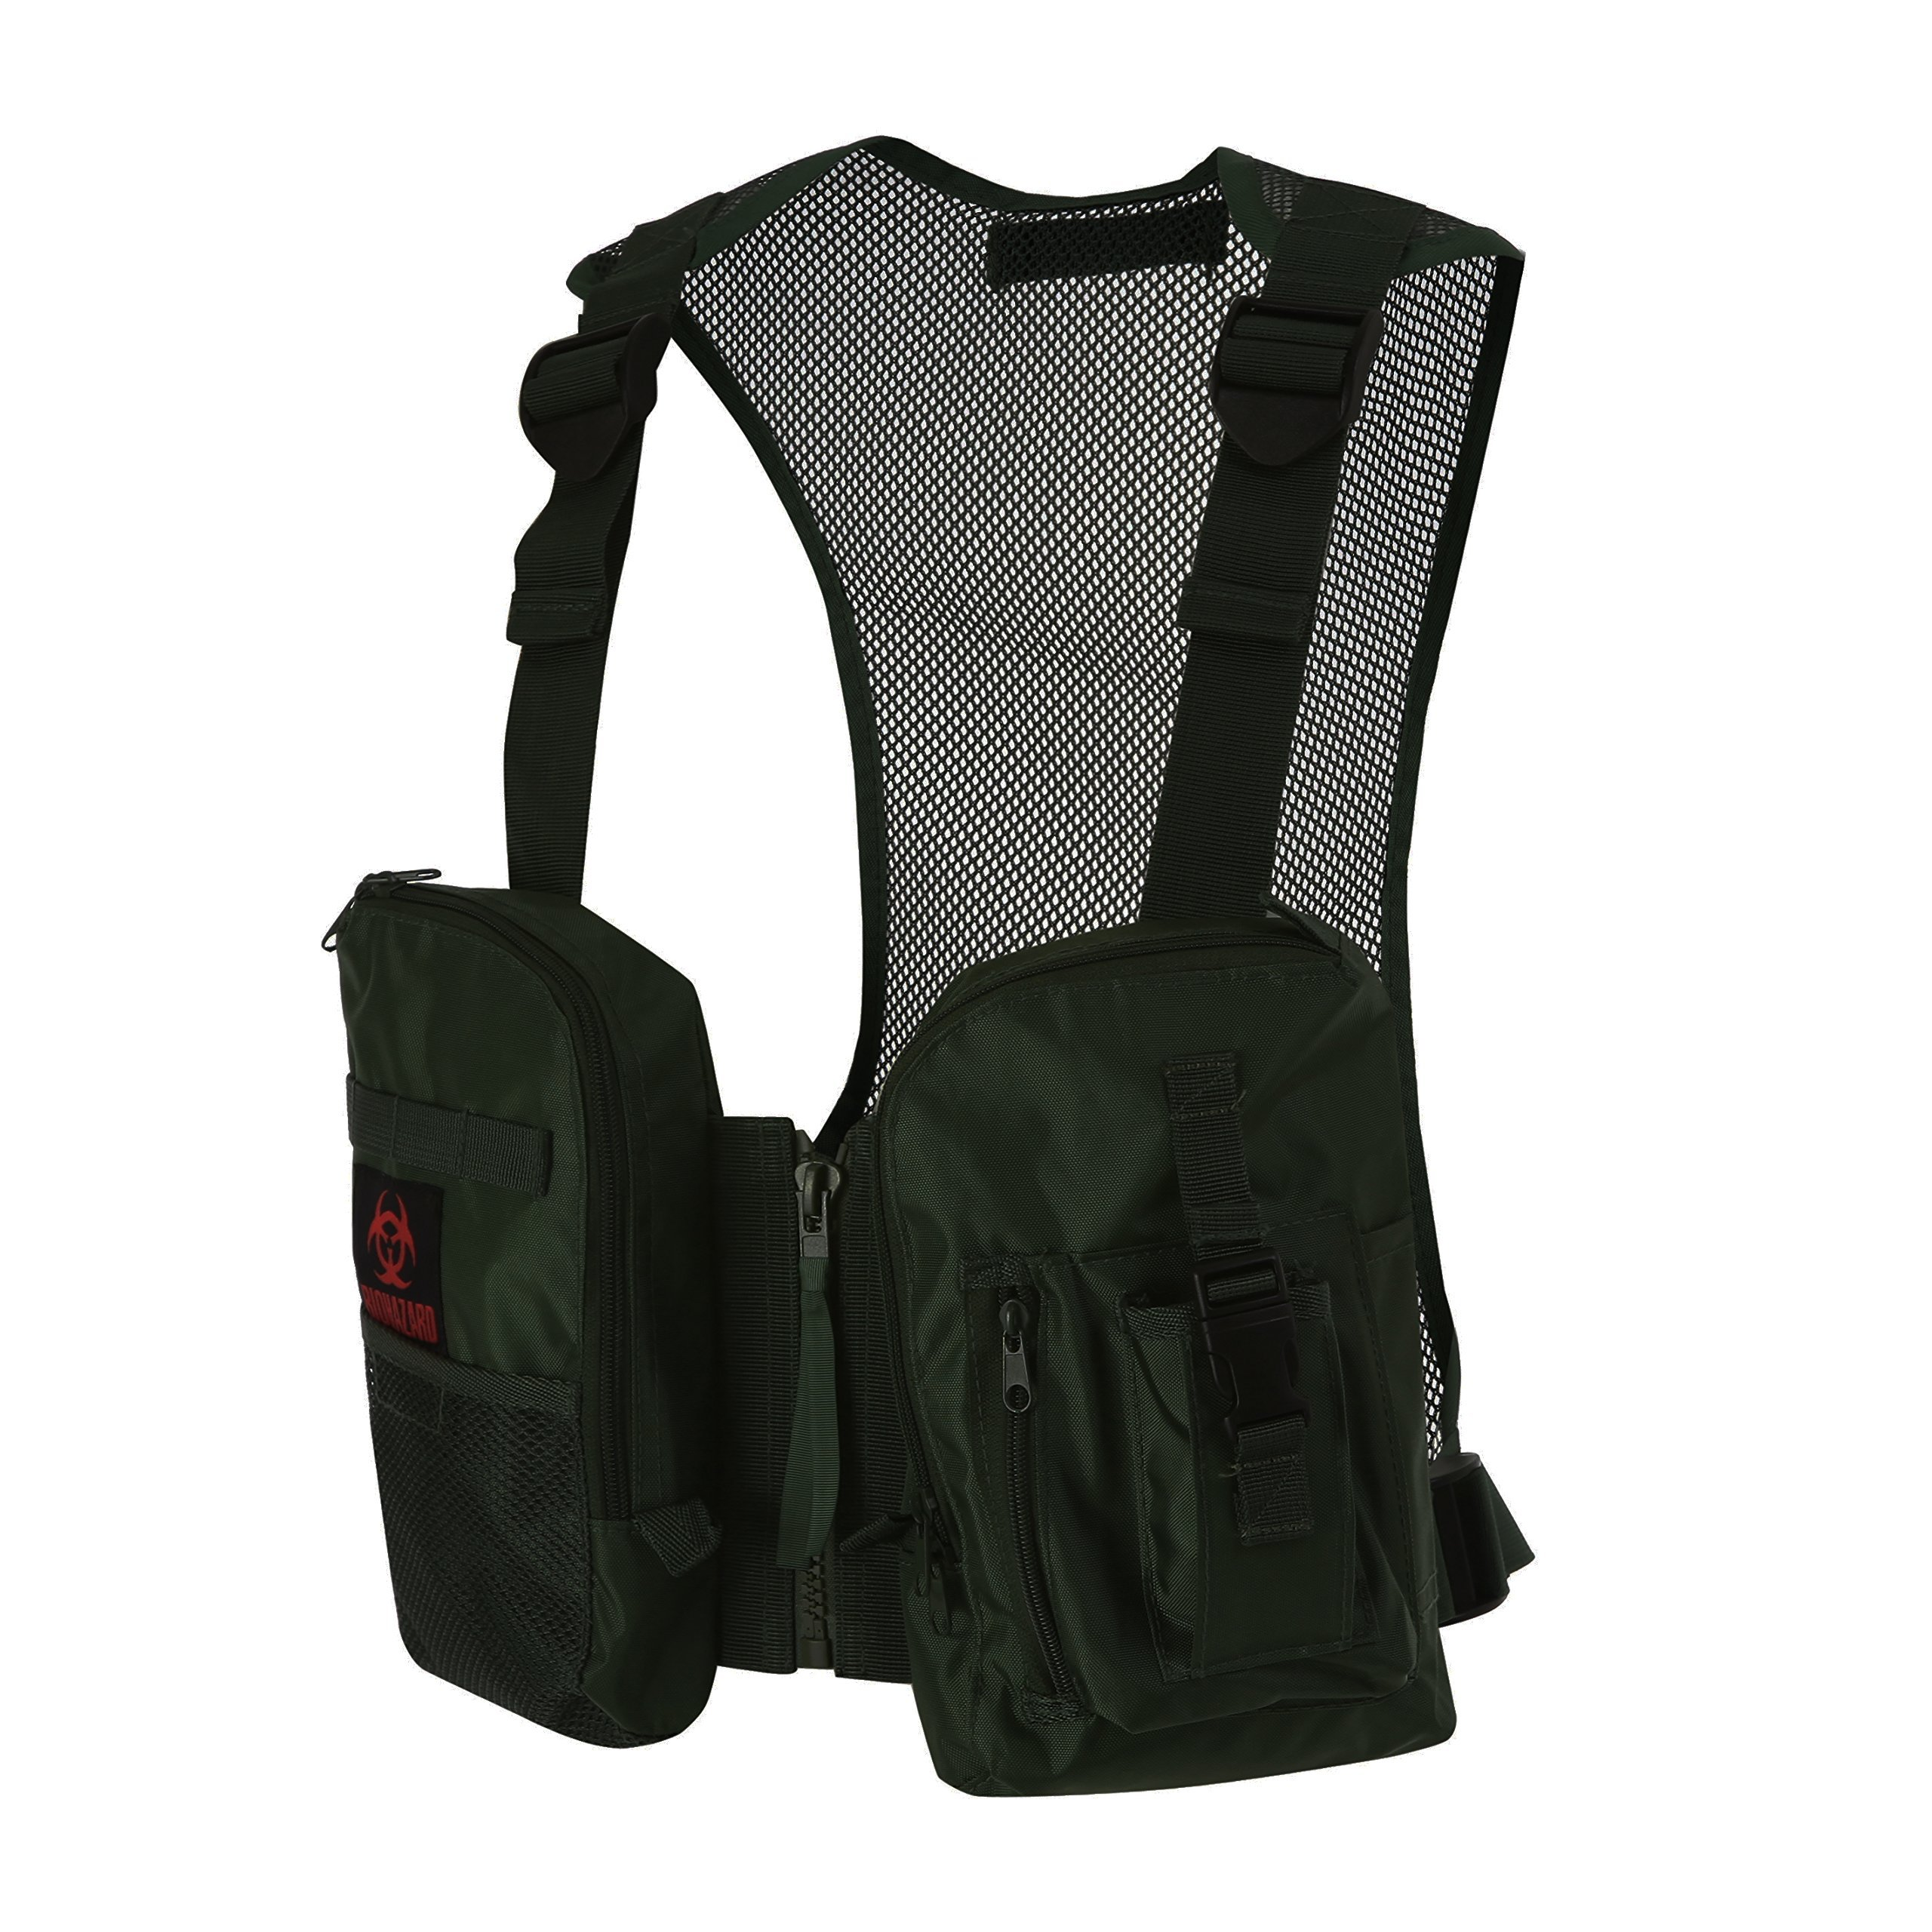 Military Hunting Fishing Mesh Adjustable Elastic Waistband Vest 【One Size Fits All】 (Black)